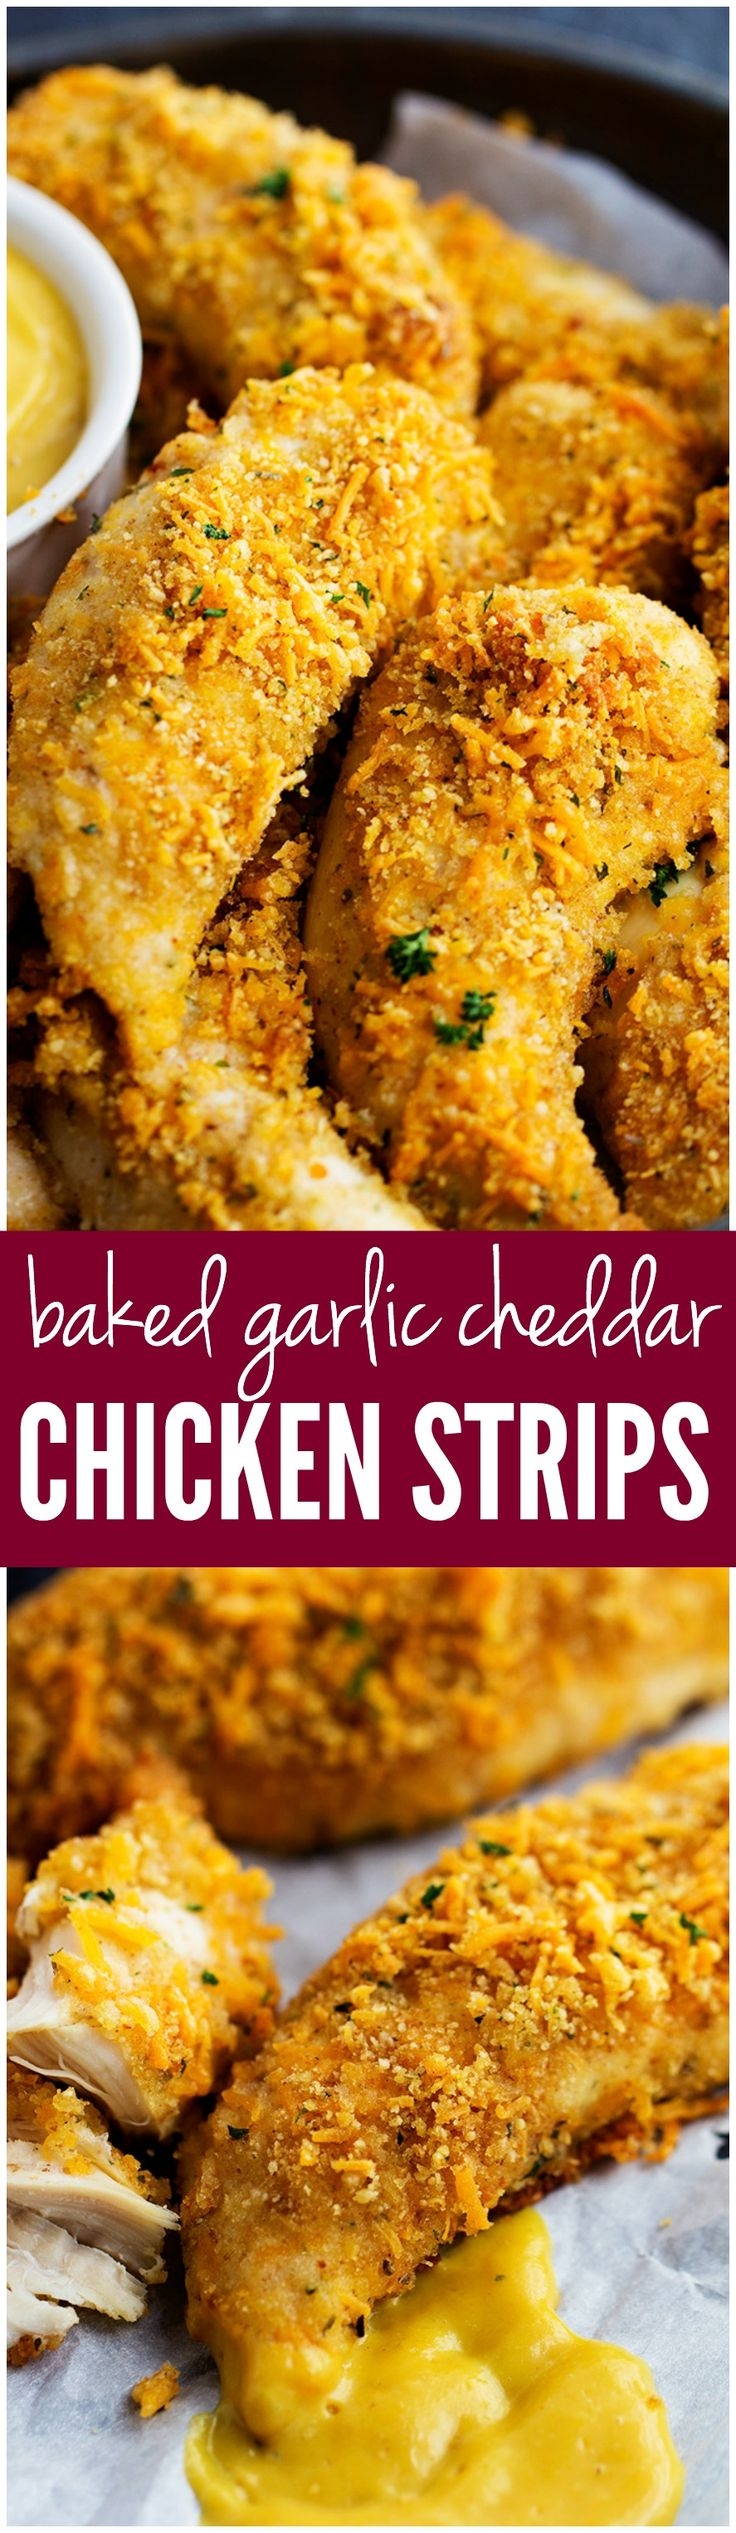 These Baked Garlic Cheddar Chicken strips are breaded in a buttery garlic and cheddar and they are the BEST!